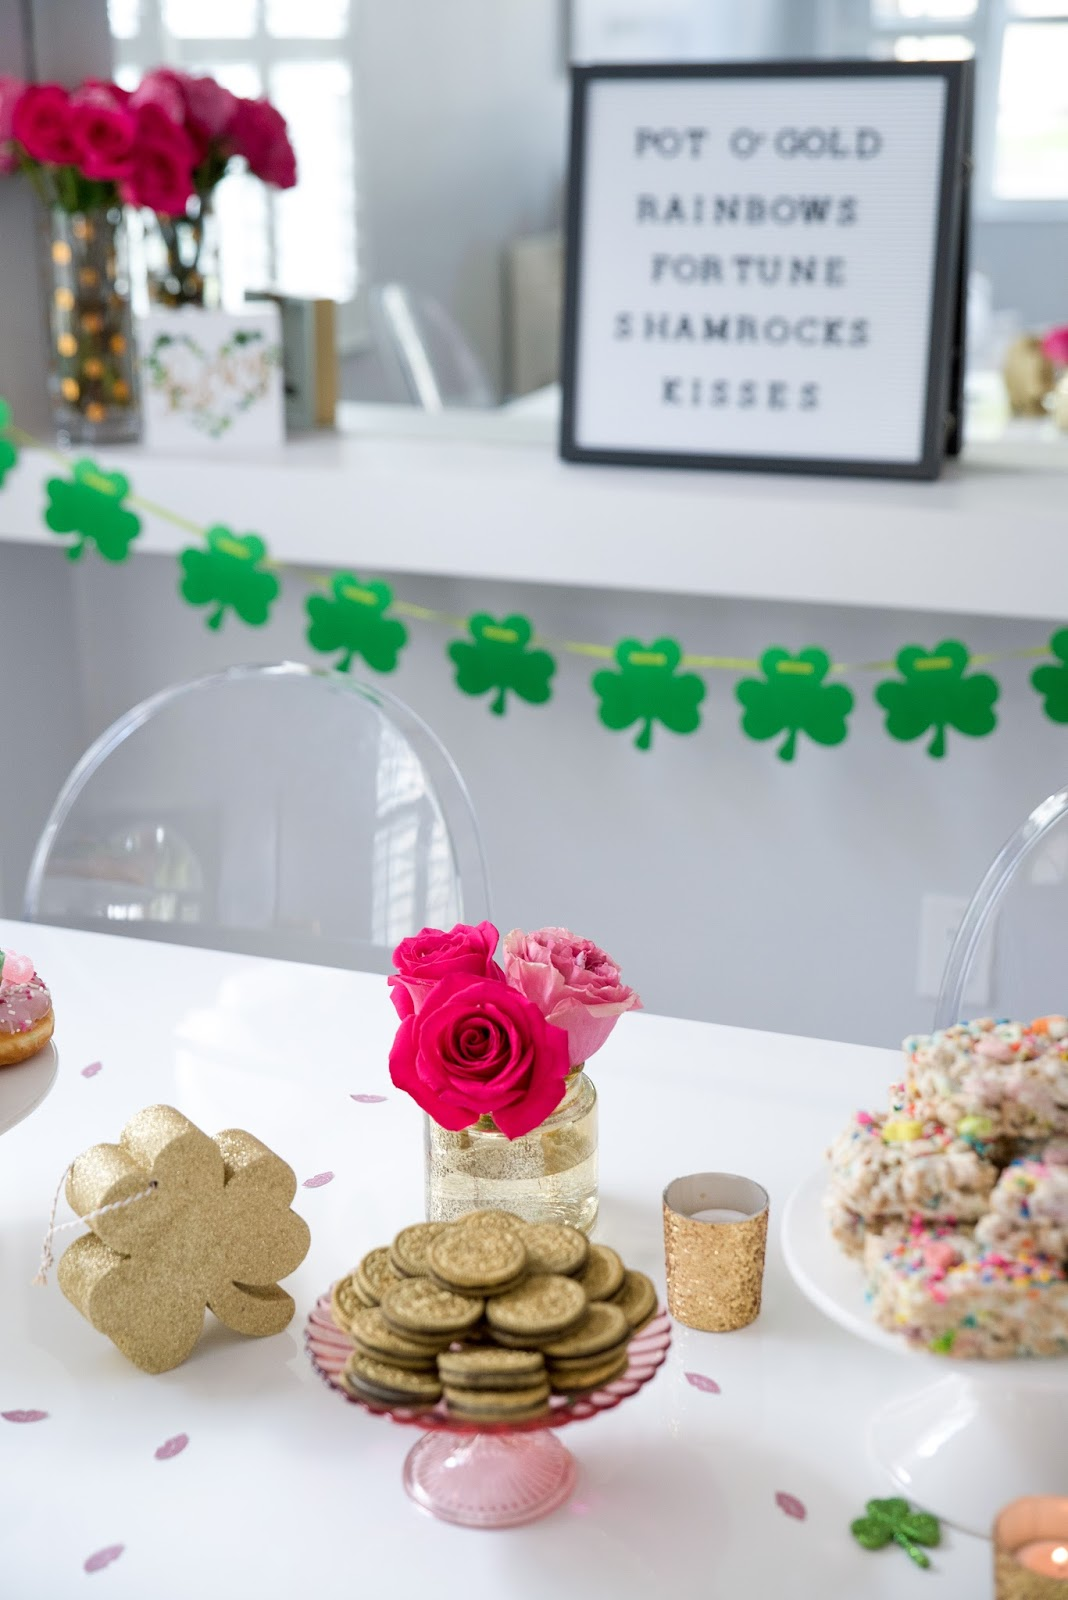 Girly St Patricks Day Party by popular South Florida party blogger The Celebration Stylist